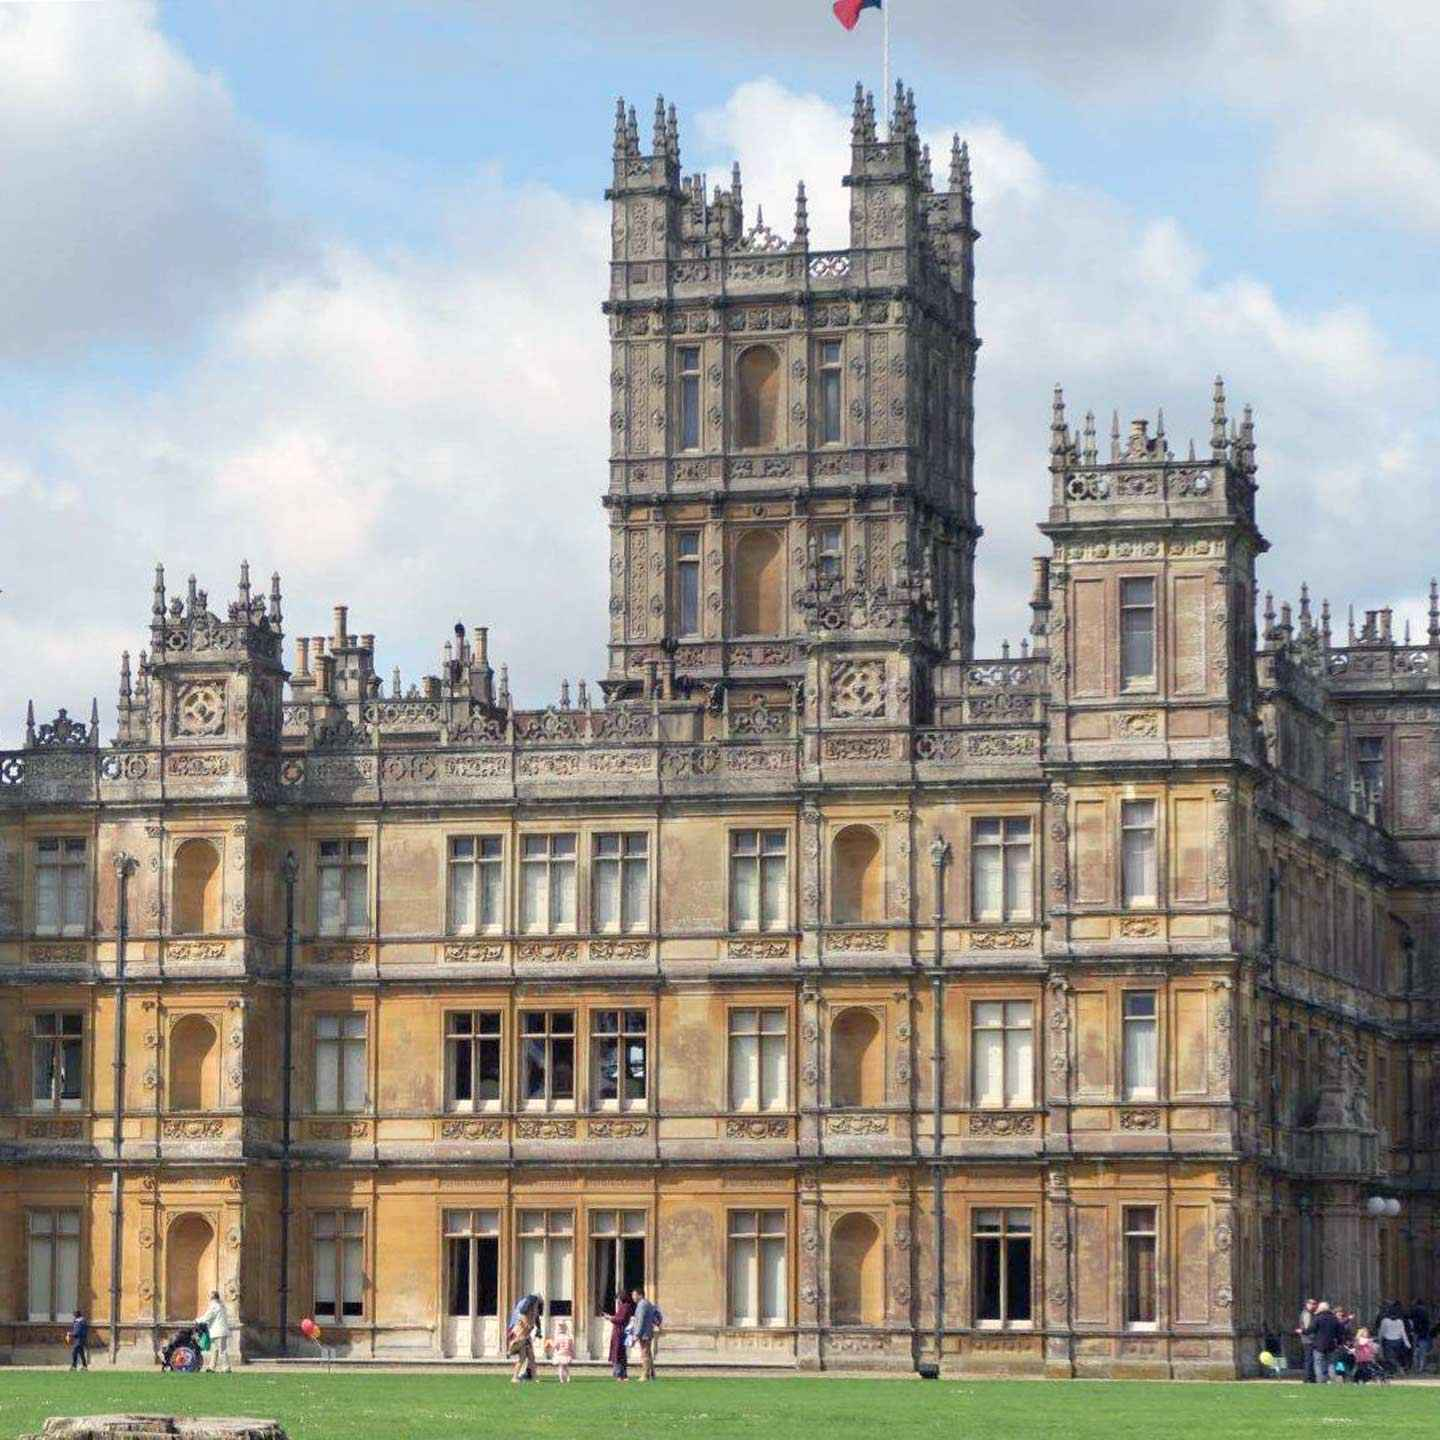 Make a connection with your destination by visiting places from your favourite movies and TV shows. I was inspired to travel by dramatic views and culture. Be Inspired to Travel by Movies and TV on Falcondale Life blog. Image description: Highclere castle, the filming location of Downton Abbey.